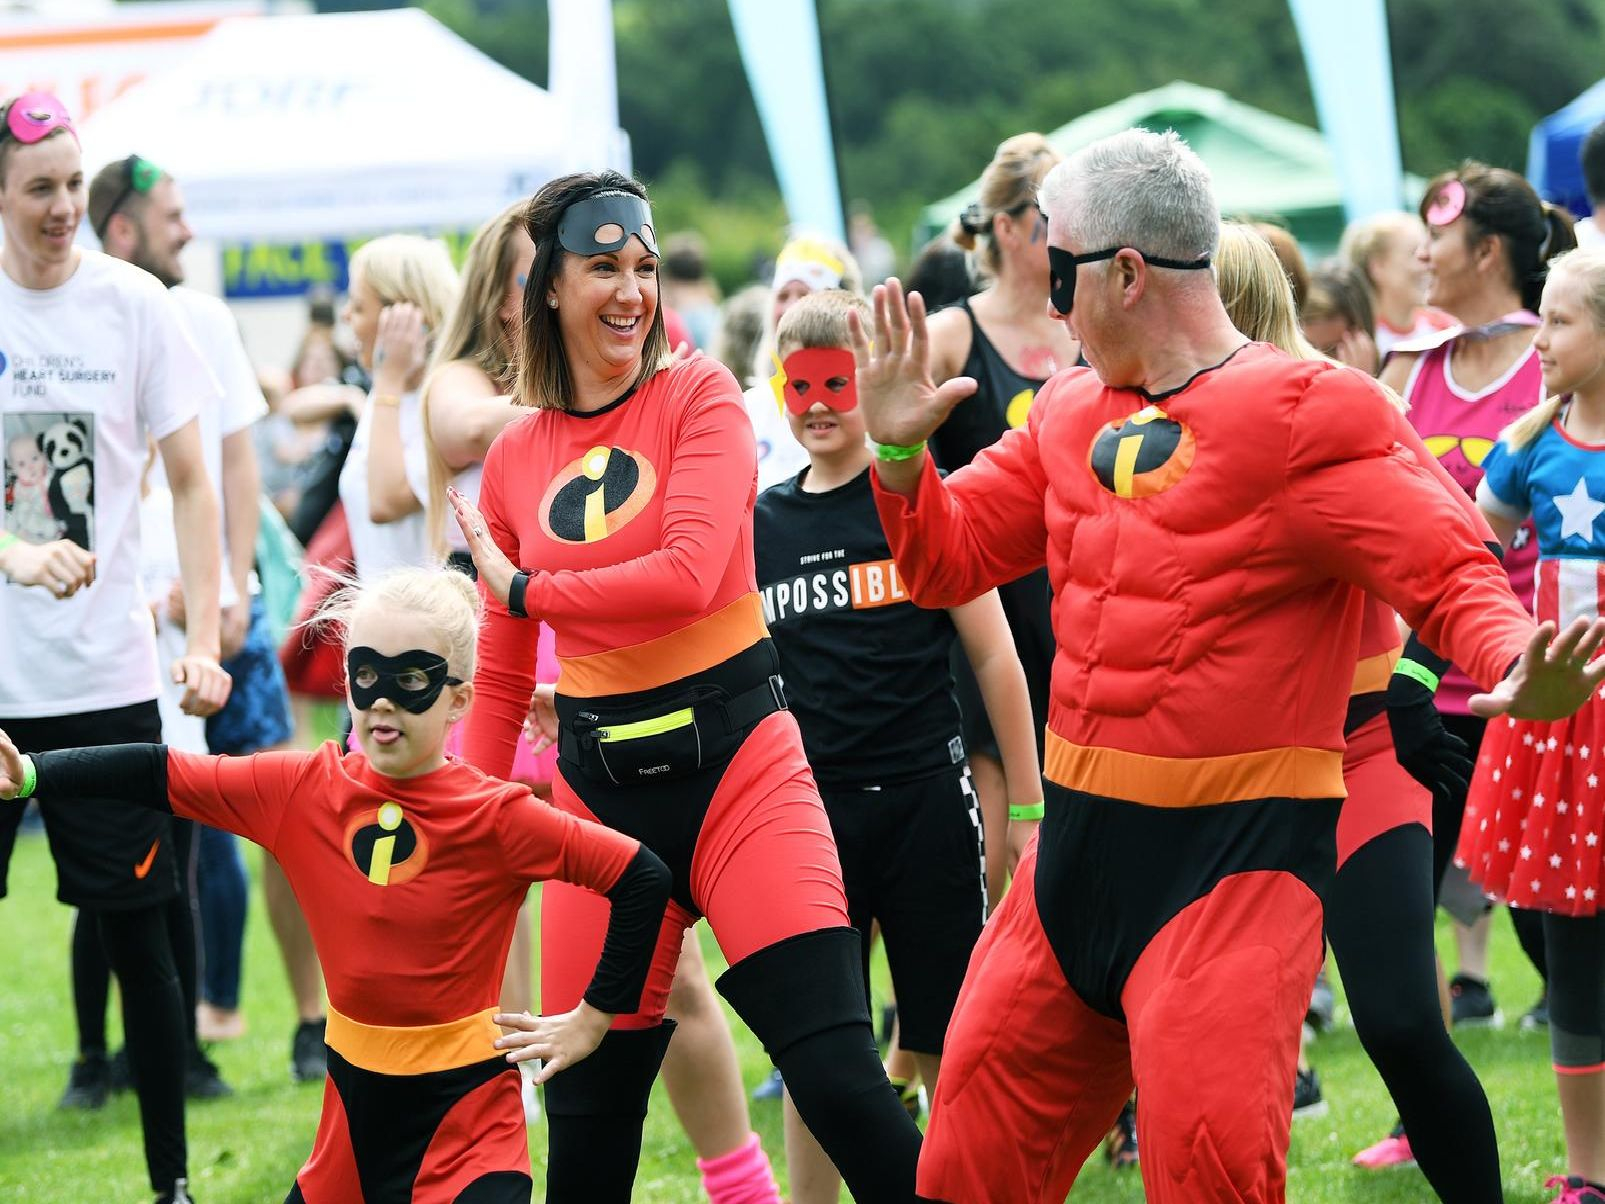 The event at Temple Newsam raised a lot of money for charity.